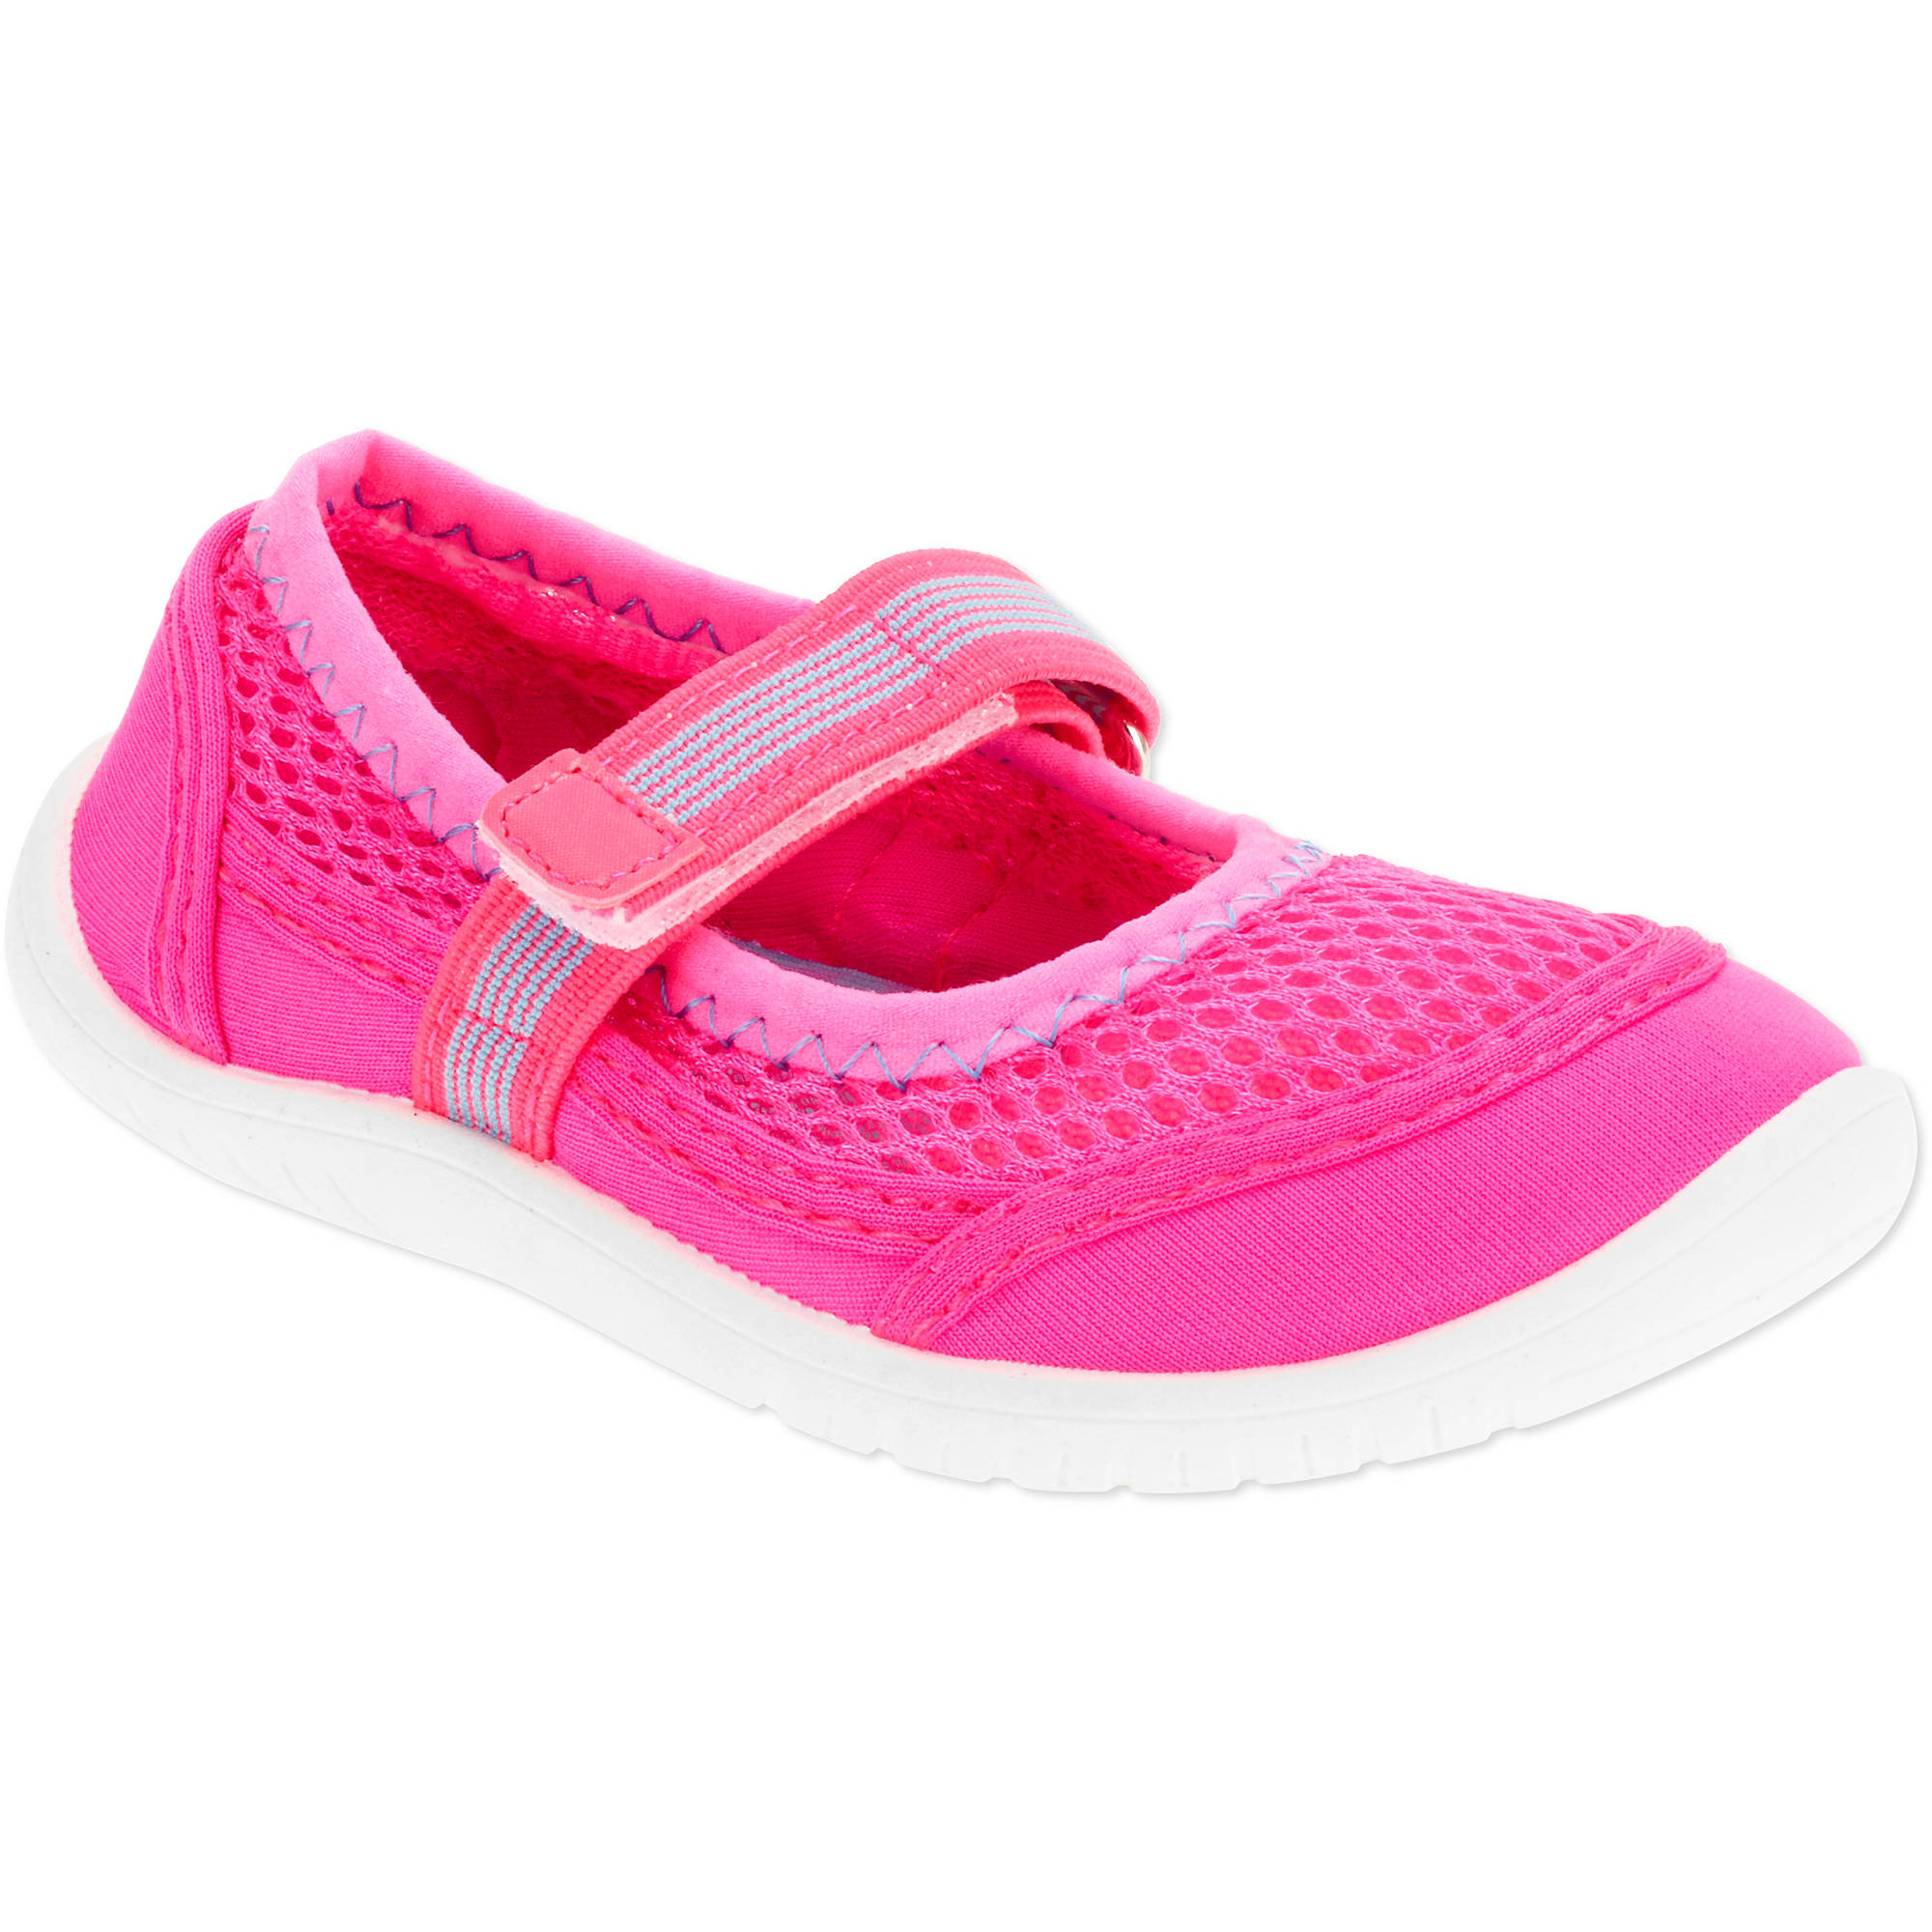 Girls Toddler Water Shoe Walmart Com